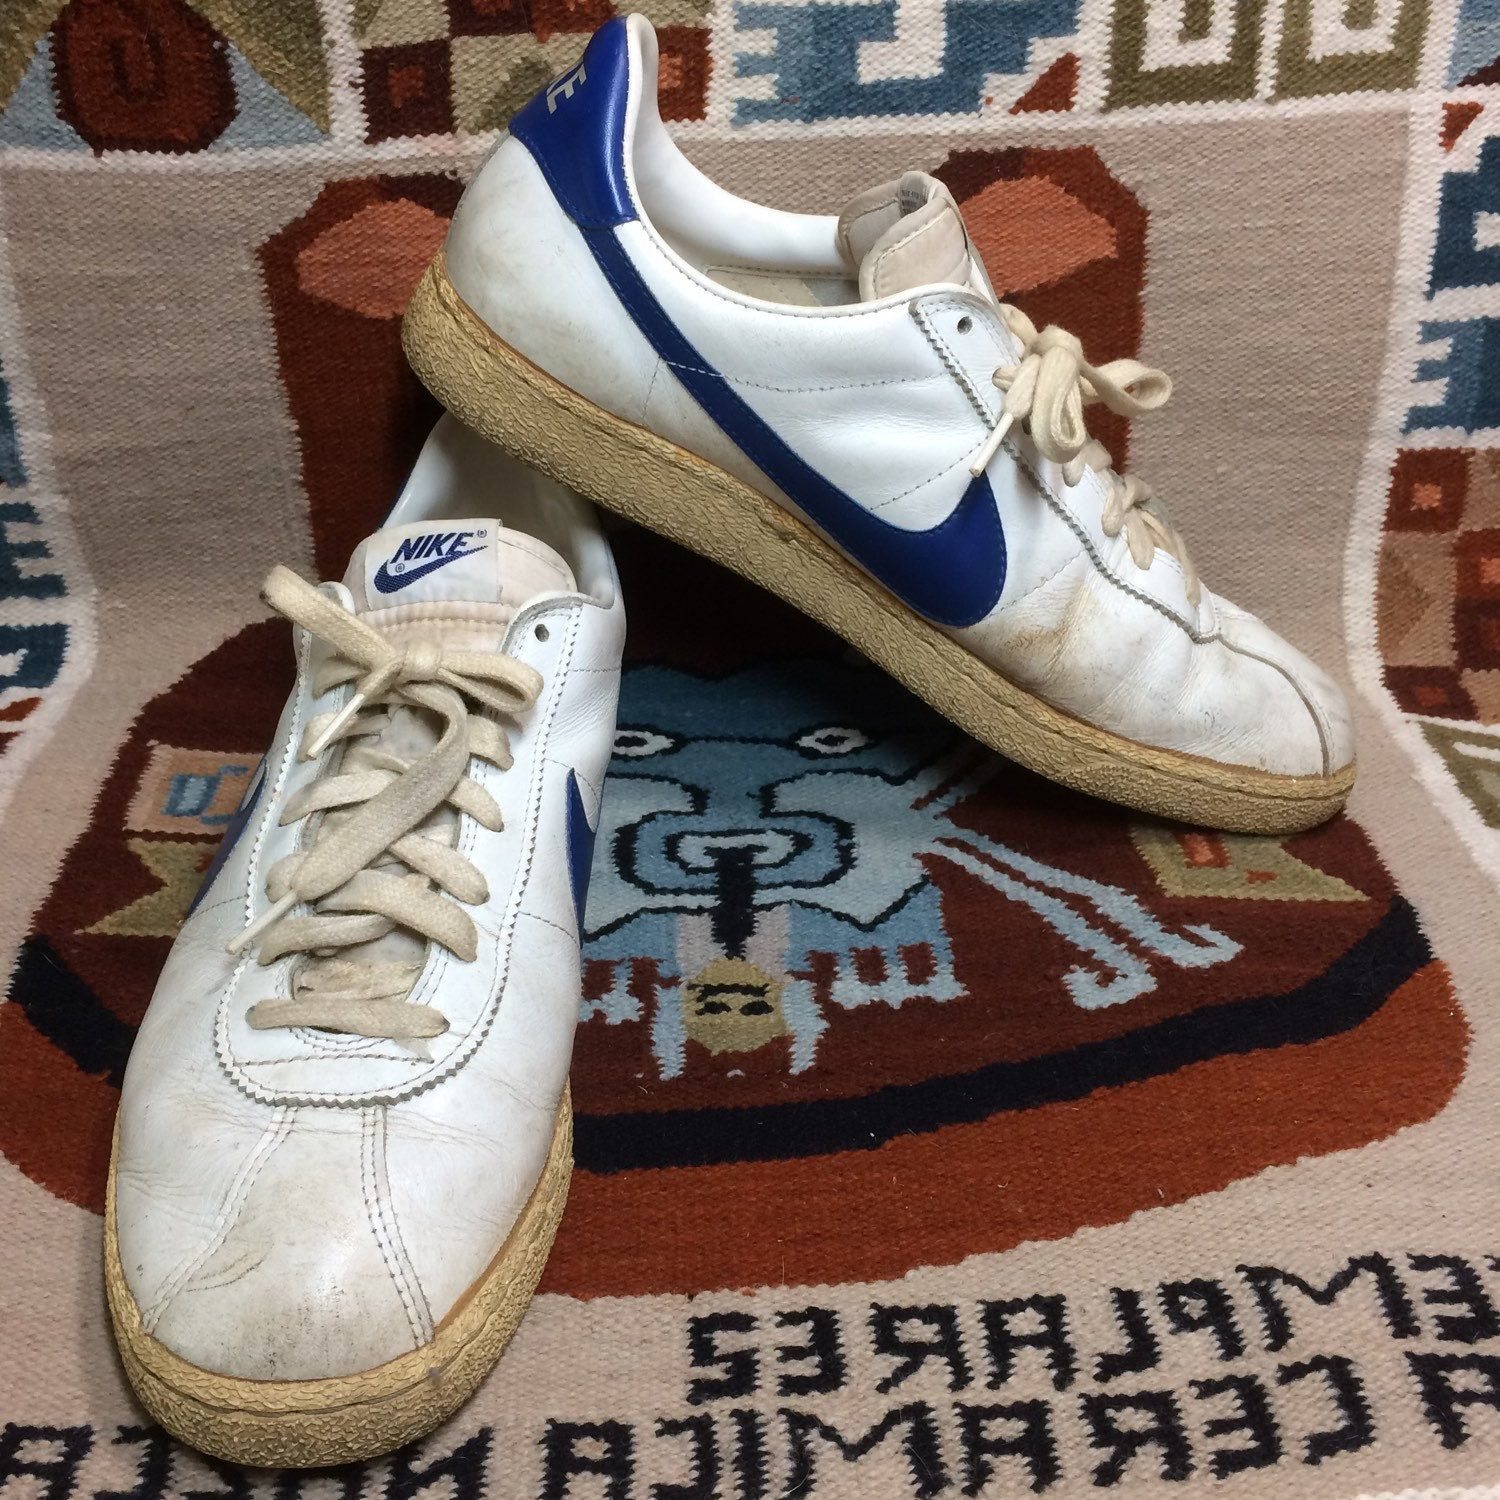 Onza vistazo Temblar  1982 Nike Bruin leather Sneakers size 13 White blue swoosh made in Thailand  Marty McFly back to the future collector | Nike, Leather sneakers, Sneakers